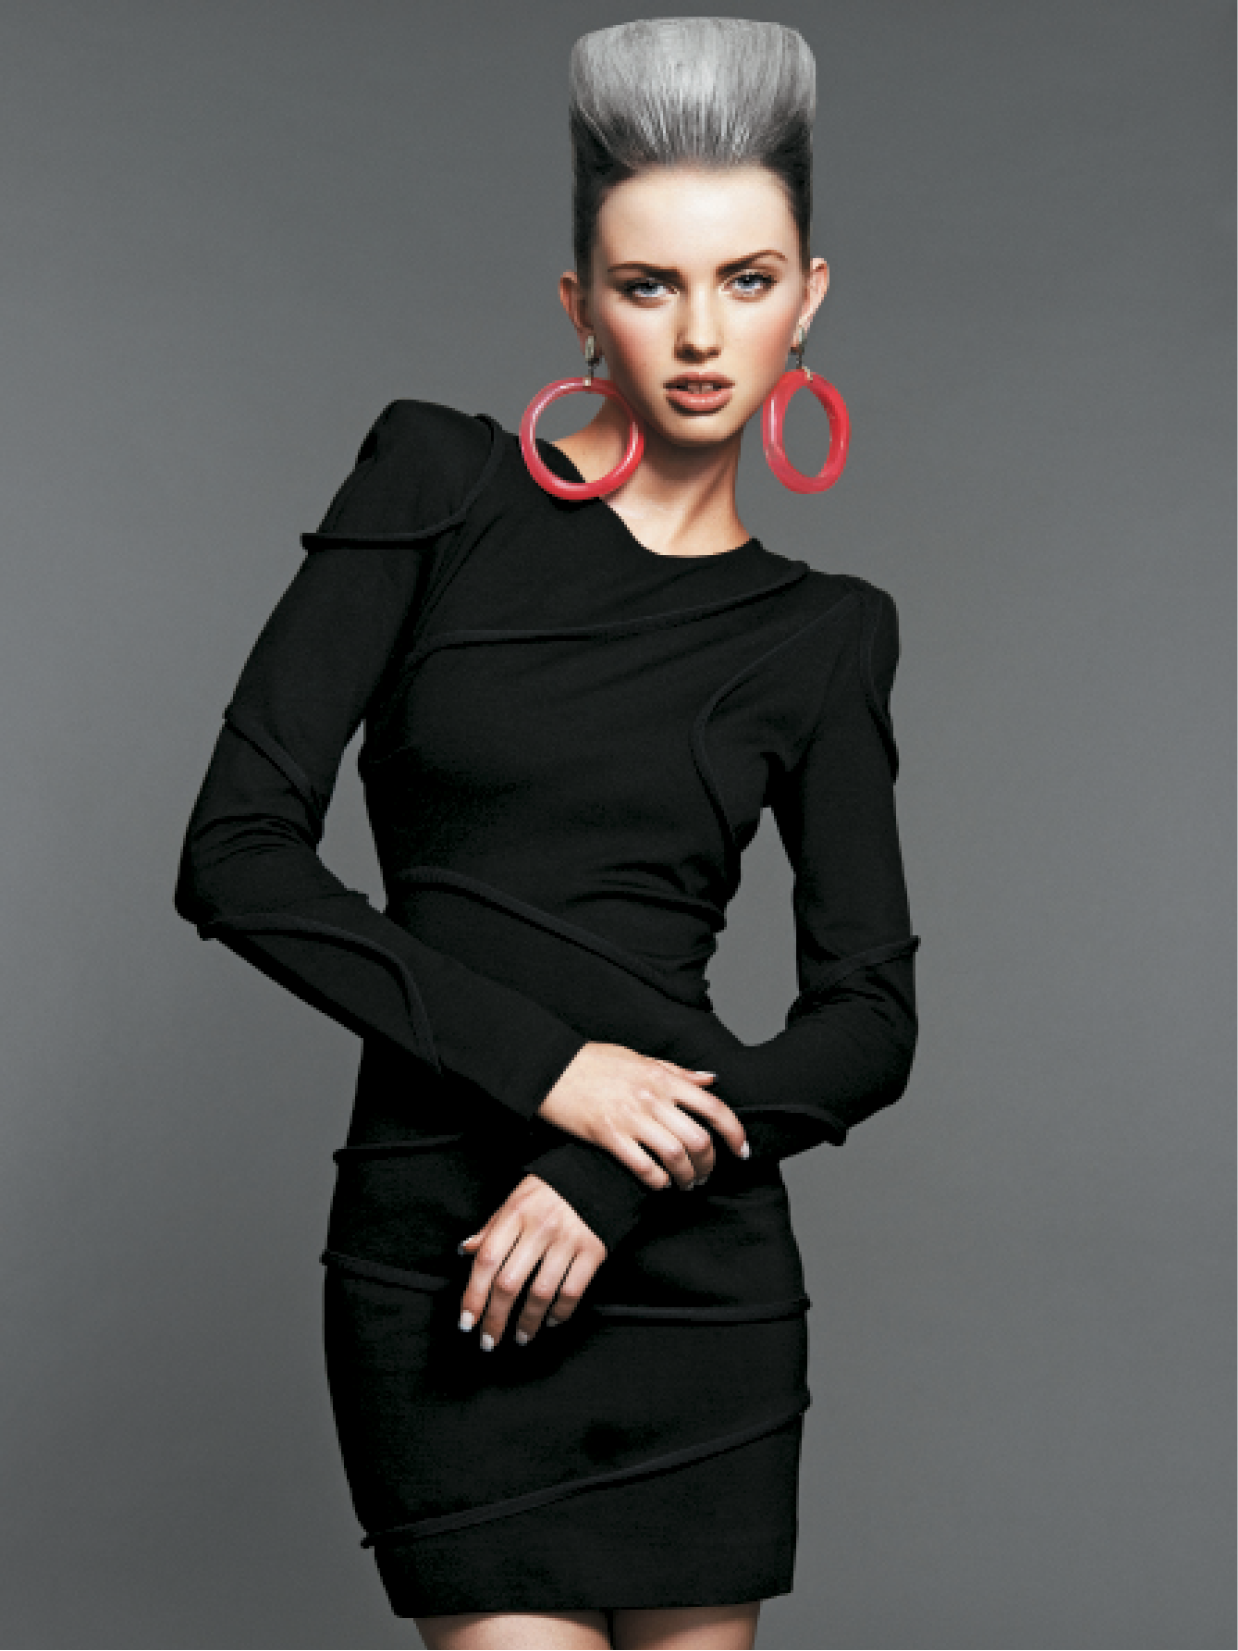 The team built this square quiff by gathering sections of hair at the recession into a U-shape. They pulled the underneath section tight and French-twisted the tail. The duo then teased the top, applied hairspray and began framing the shape. To finish, they used a scarf and hairspray as one stylist added heat with a blow-dryer while the other held the scarf and formed the shape.